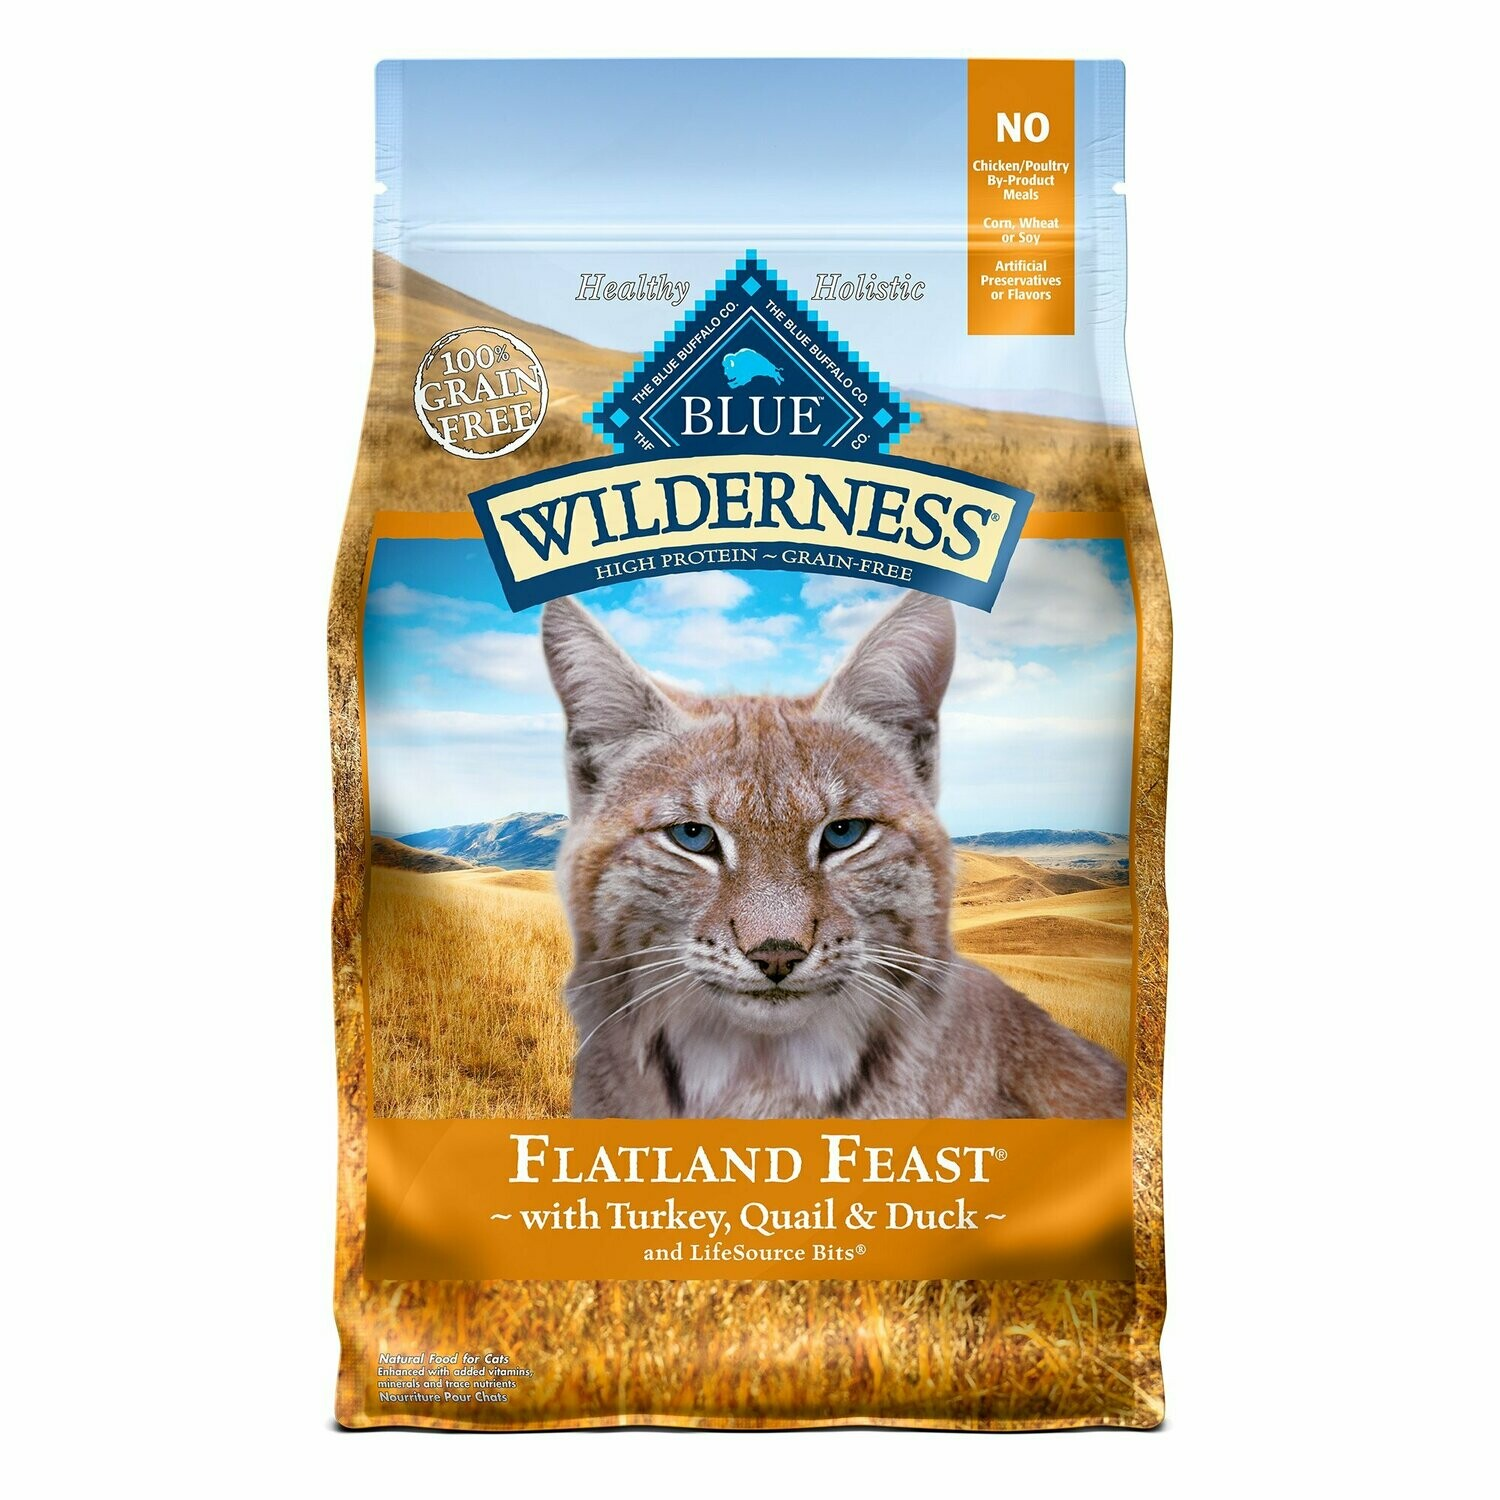 Blue wilderness 100% grain free Flatland feast with turkey quail and duck for cats 4 pounds (9/19)